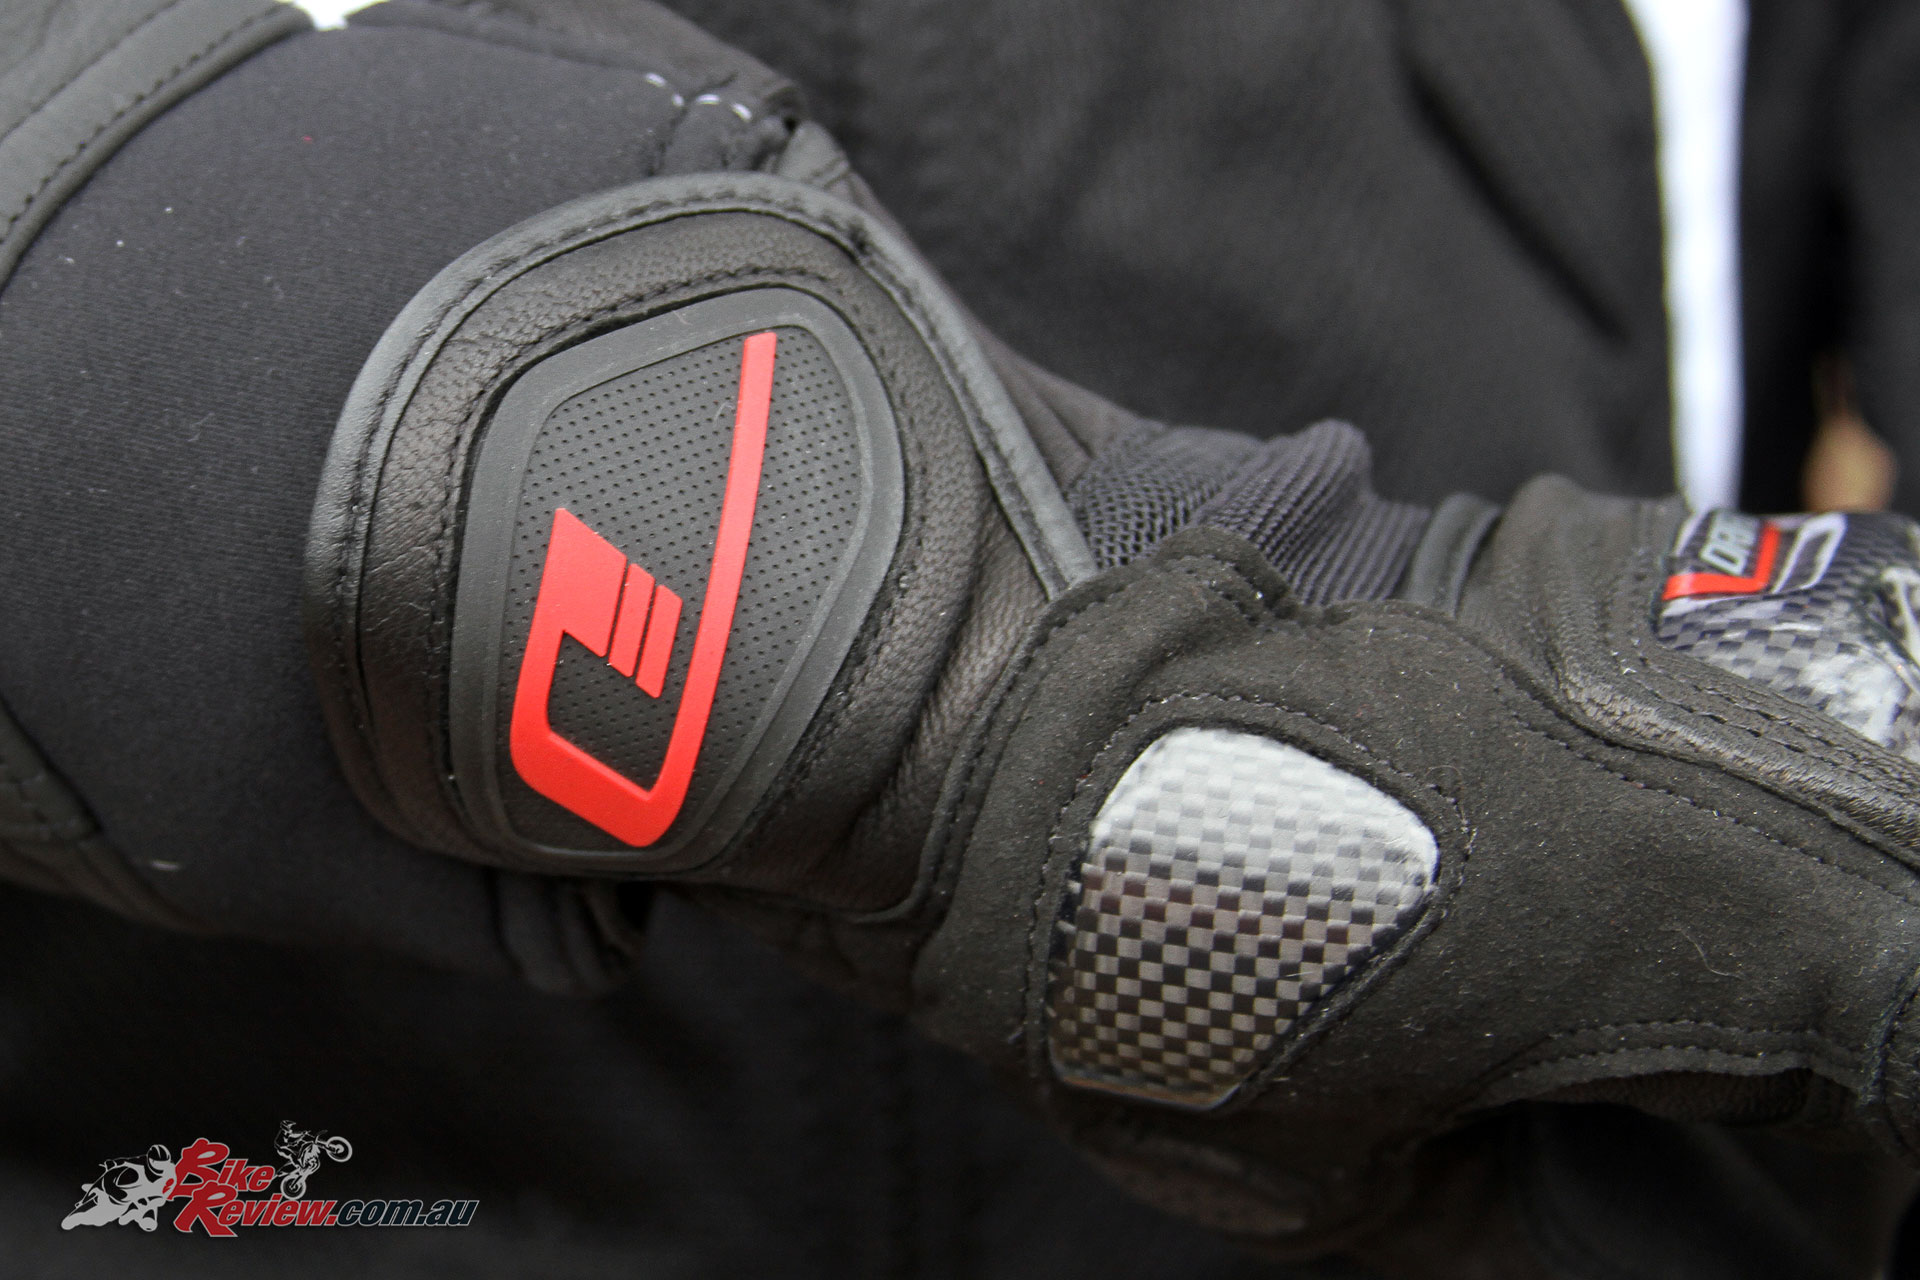 Dririder Strike Glove - Wrist protection